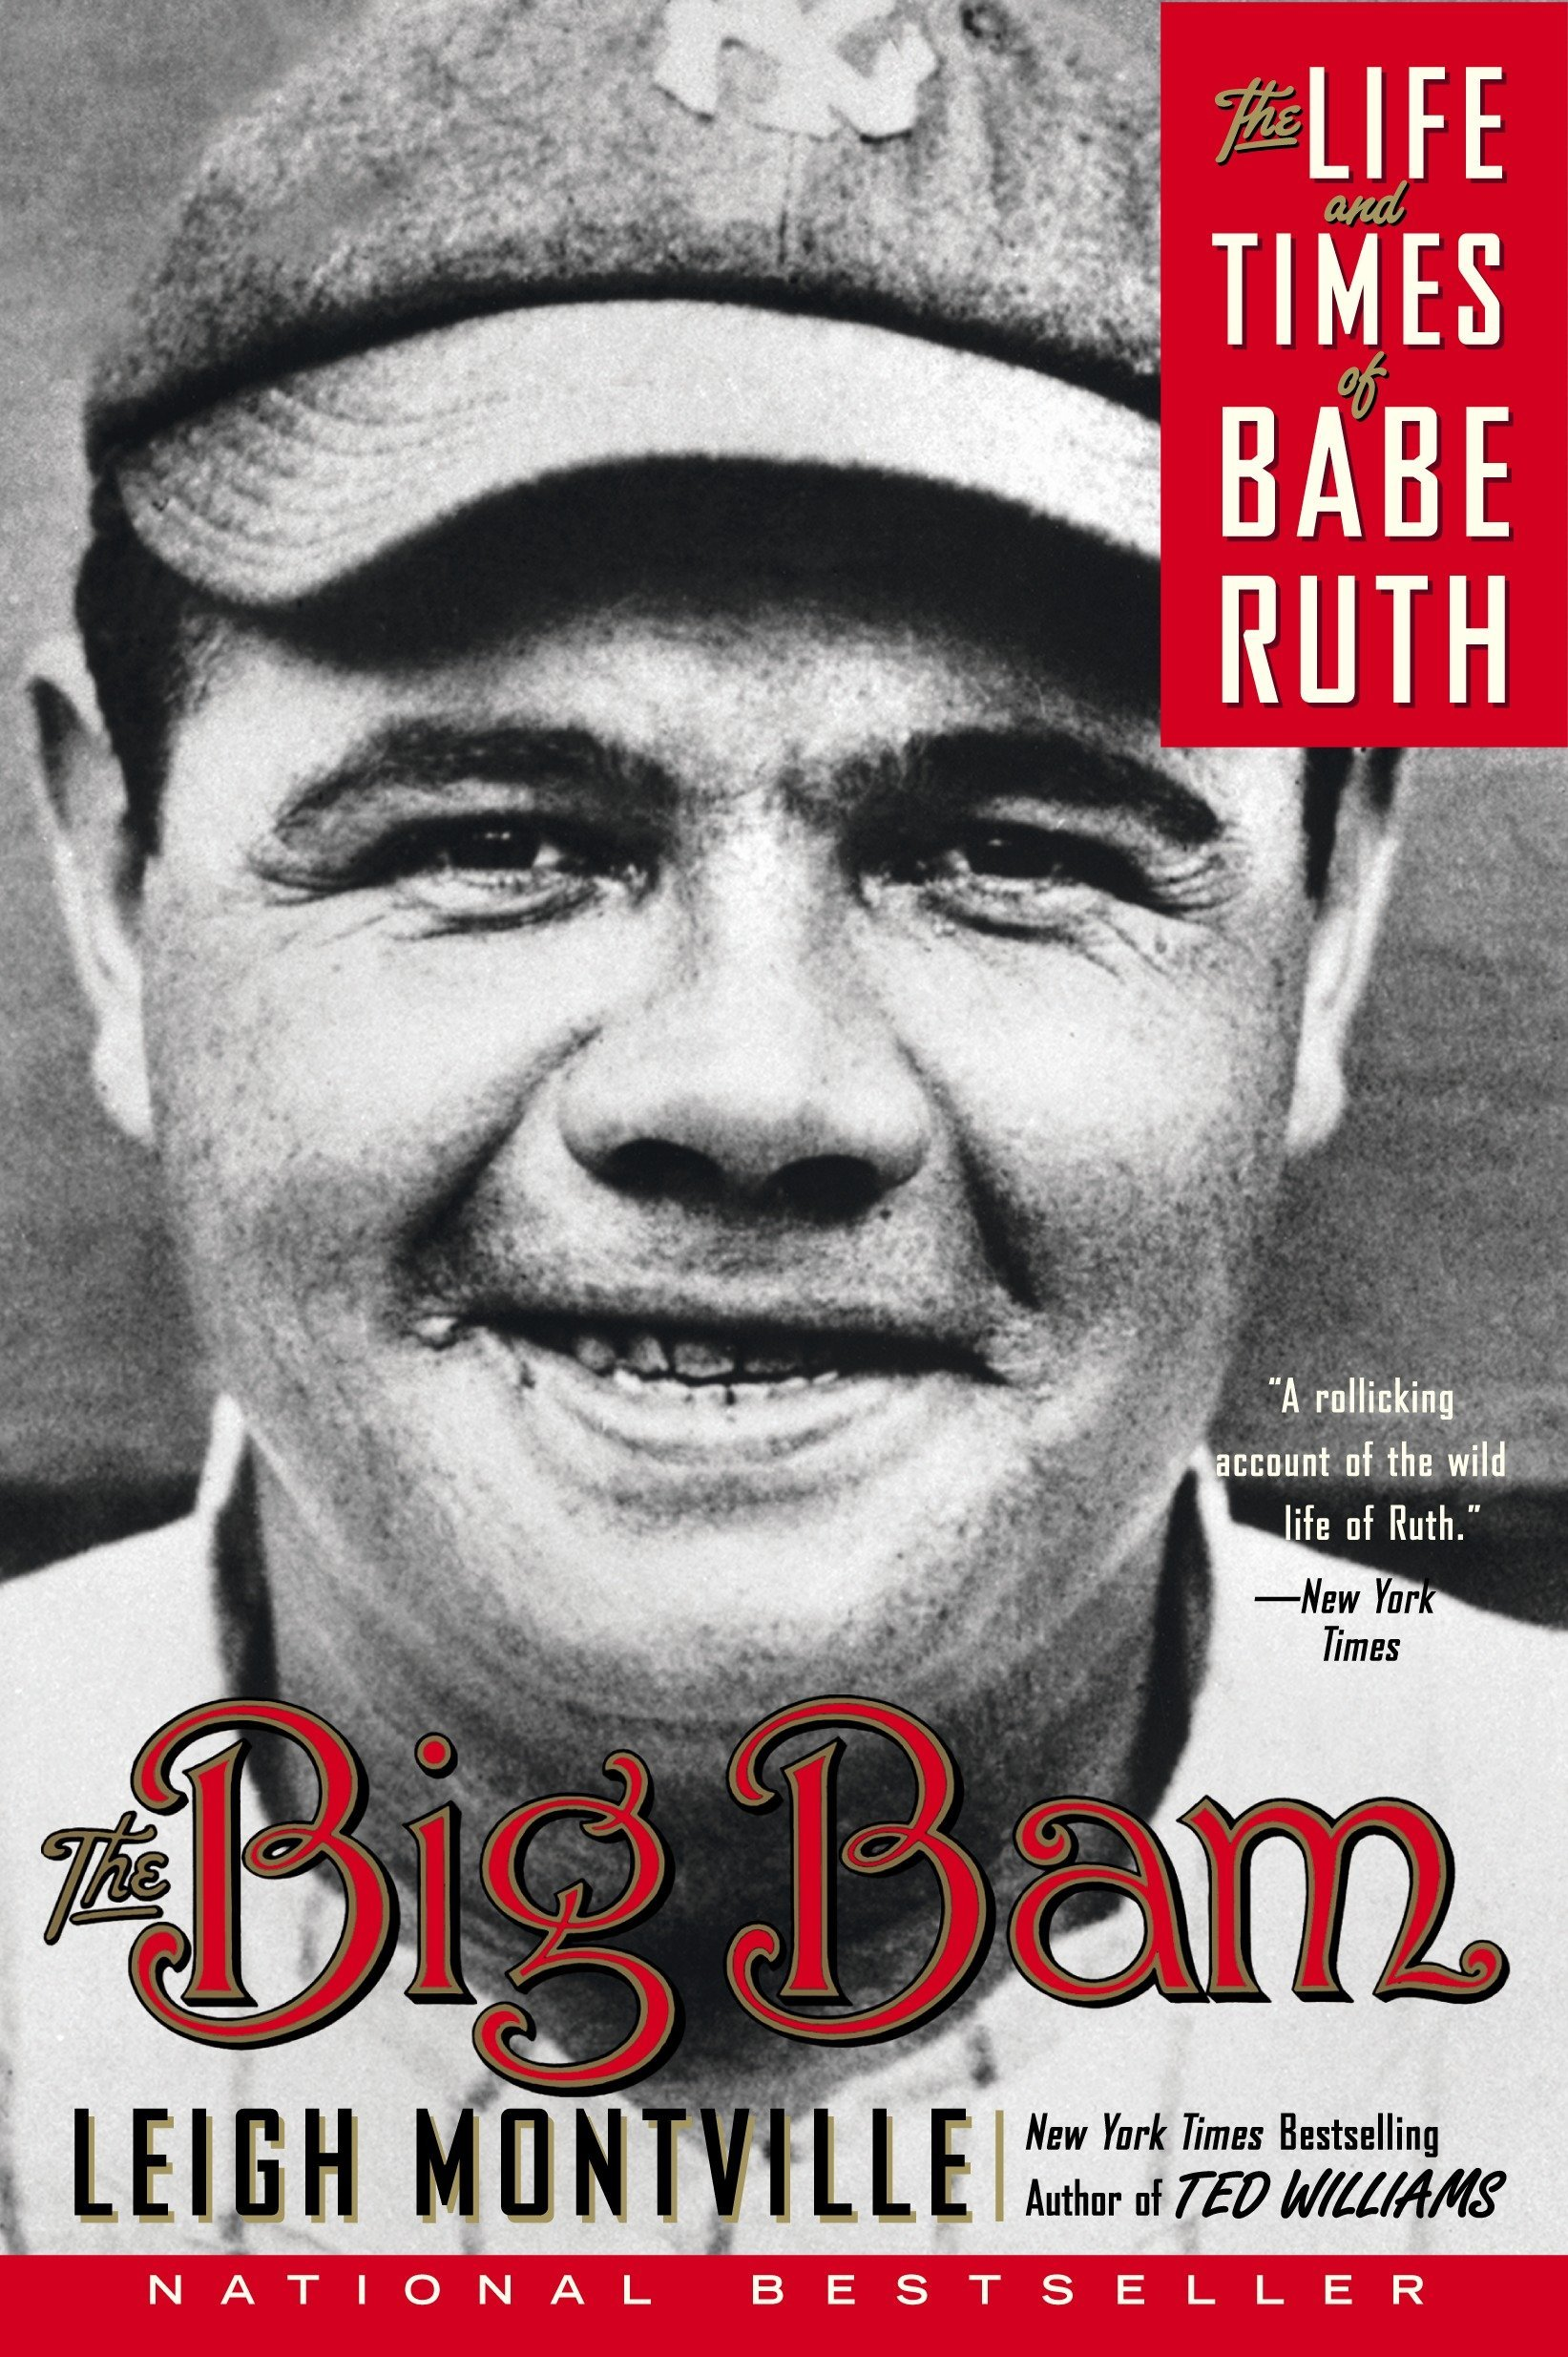 Amazon.it: The Big Bam: The Life and Times of Babe Ruth